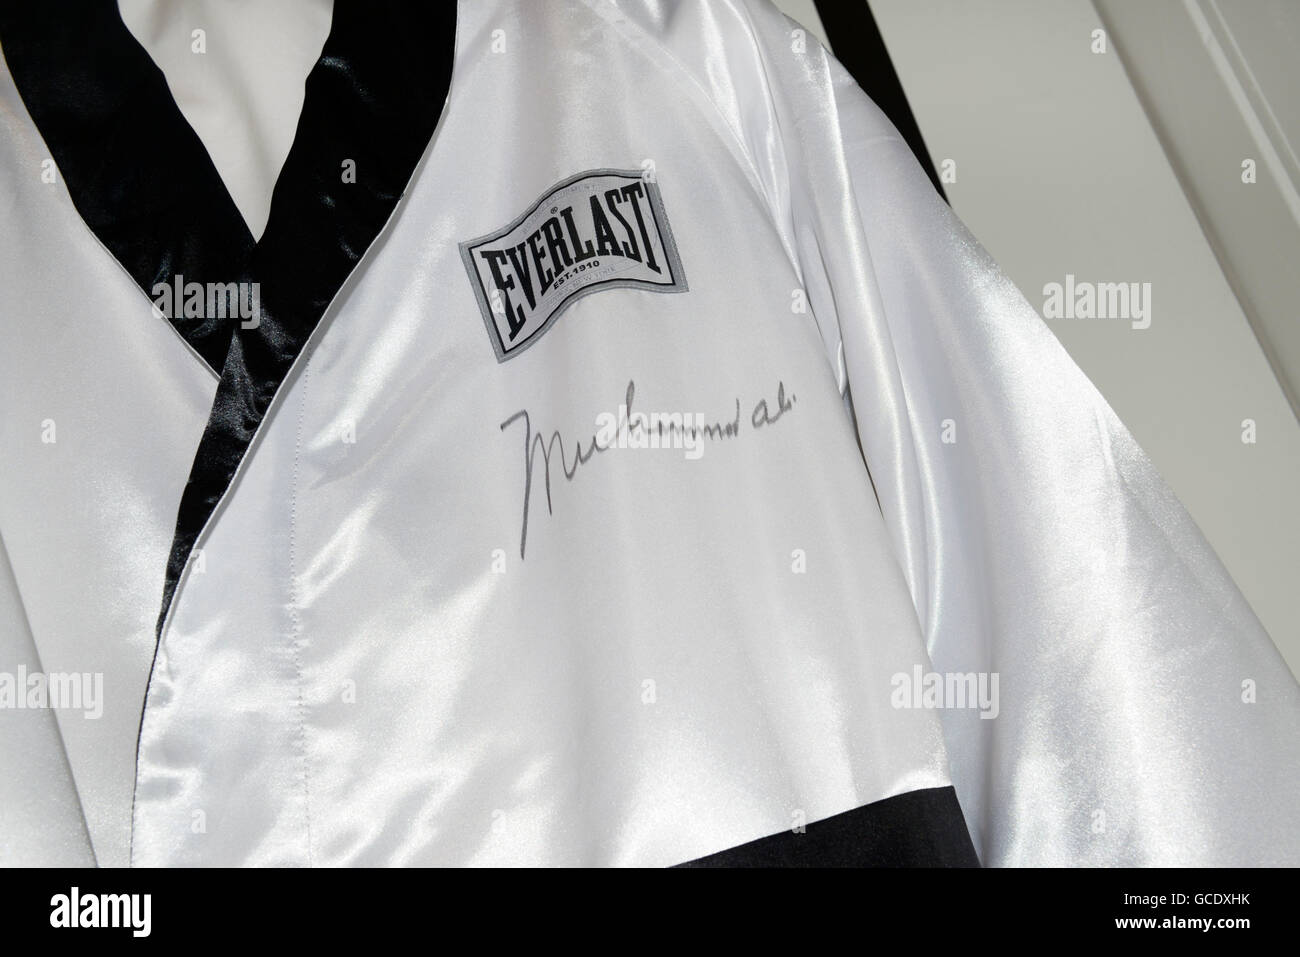 Boxing robe worn by and then signed by Muhammad Ali - Stock Image